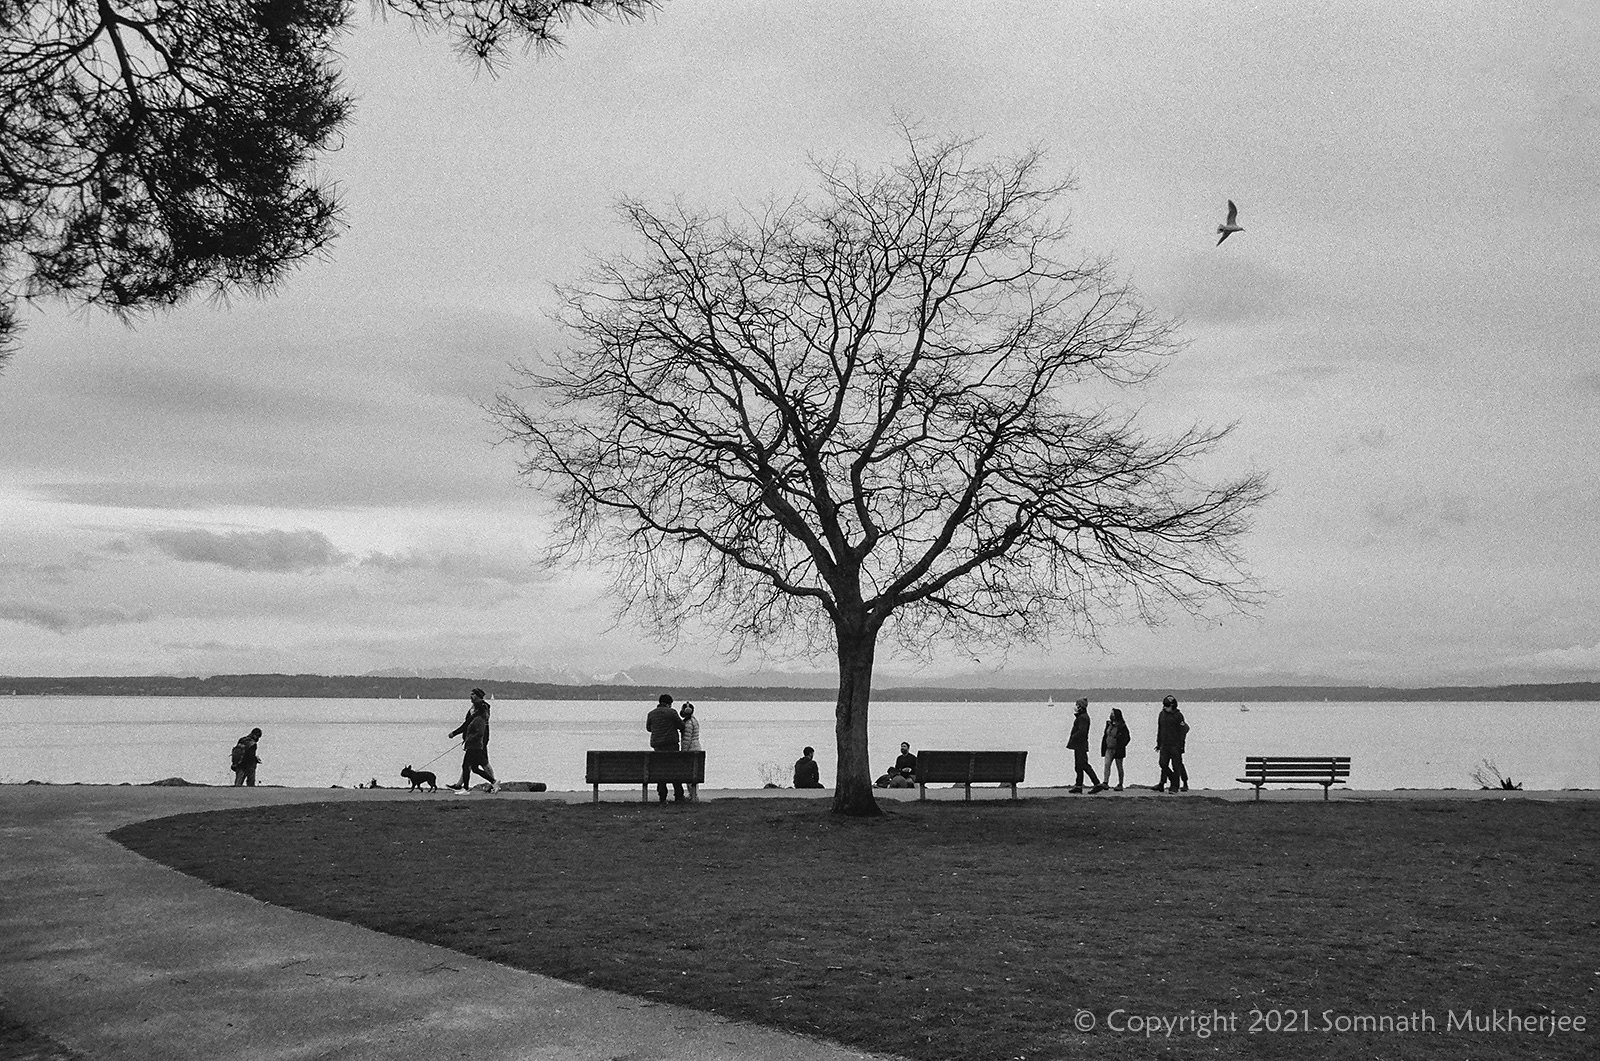 A lazy evening | Golden Gardens Park, Seattle, WA | February, 2021 by Somnath Mukherjee Photoghaphy